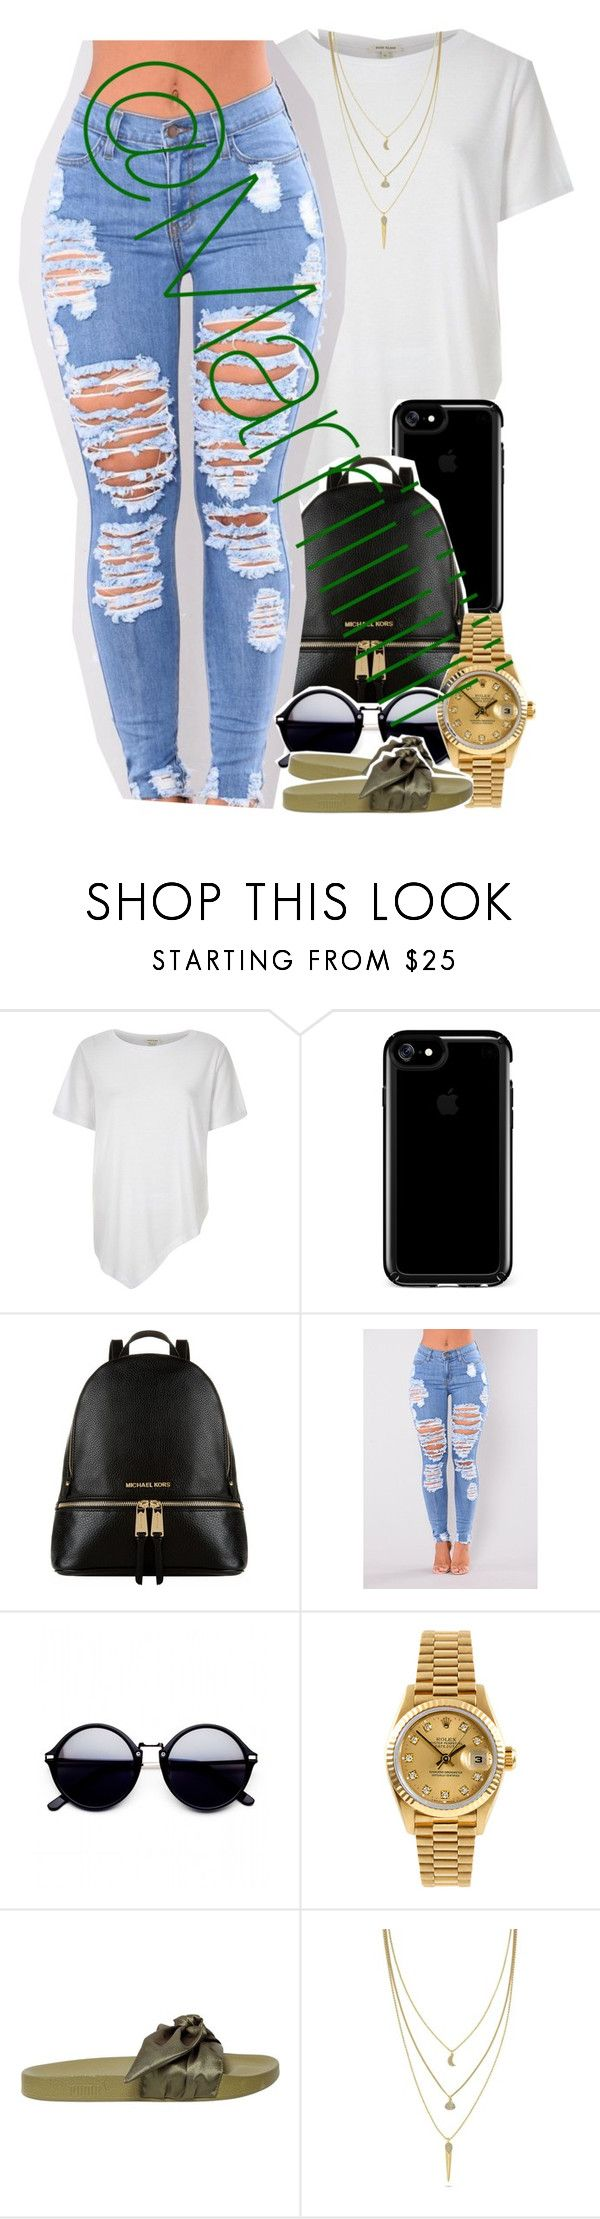 """Getting ready for these cute school outfits"" by marriiiiiiiii ❤ liked on Polyvore featuring River Island, Speck, Michael Kors, Rolex, Puma and Cole Haan"